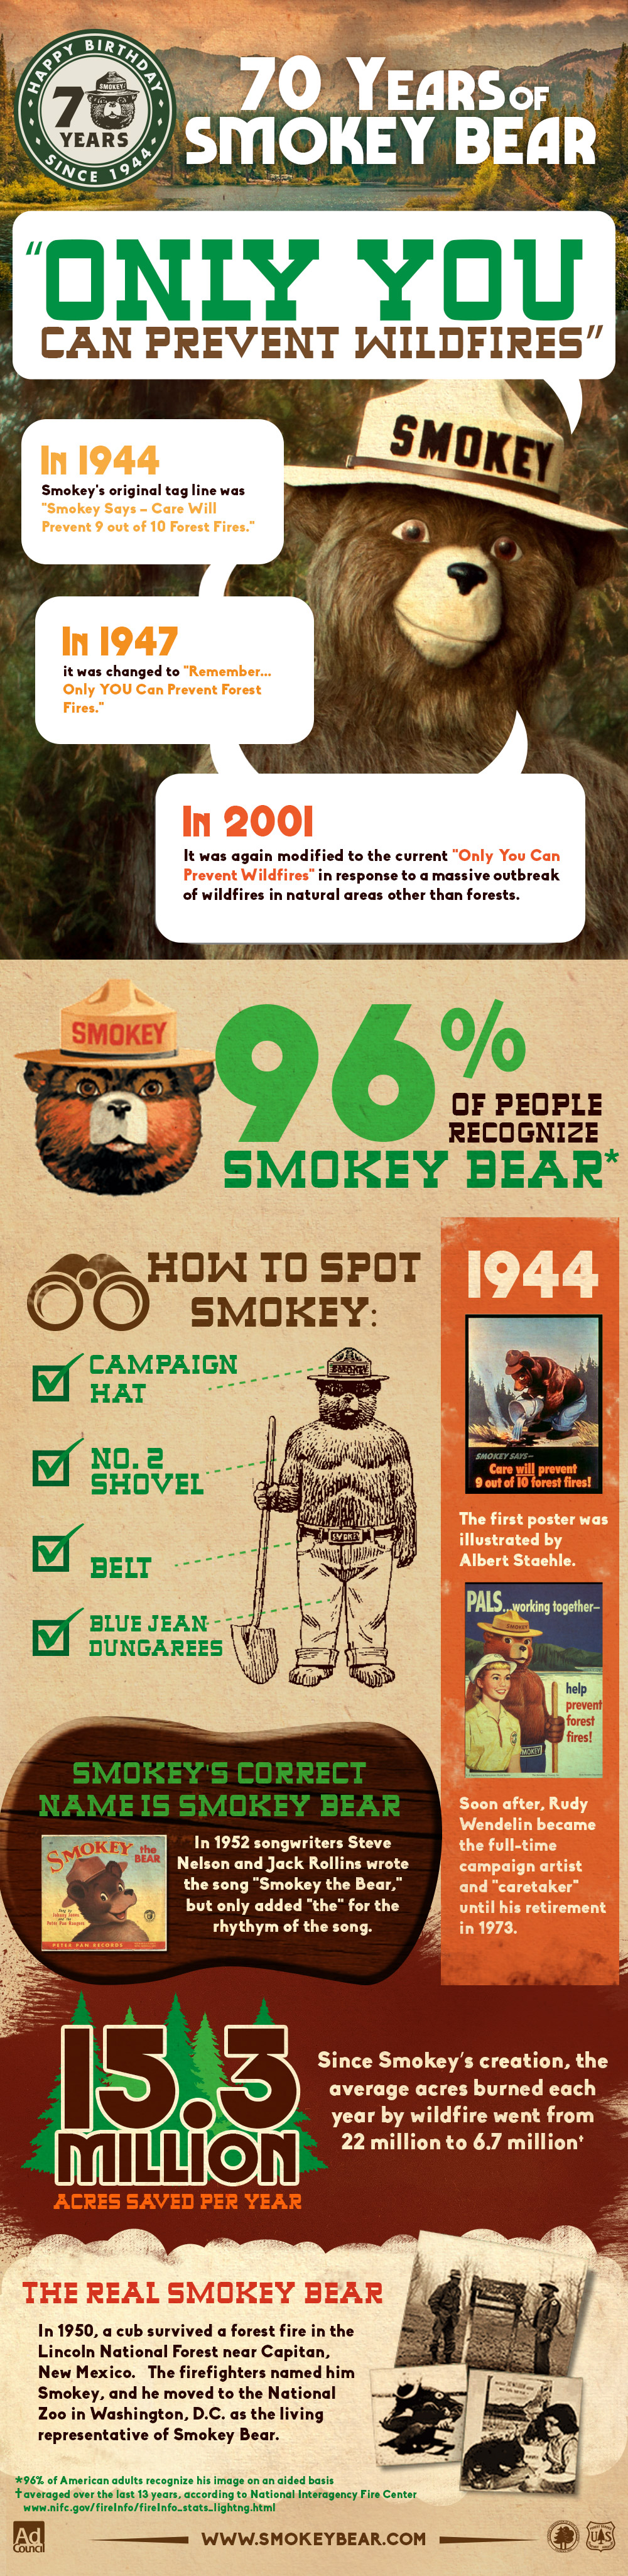 Smokey-Bear-70-Birthday-Infographic-full